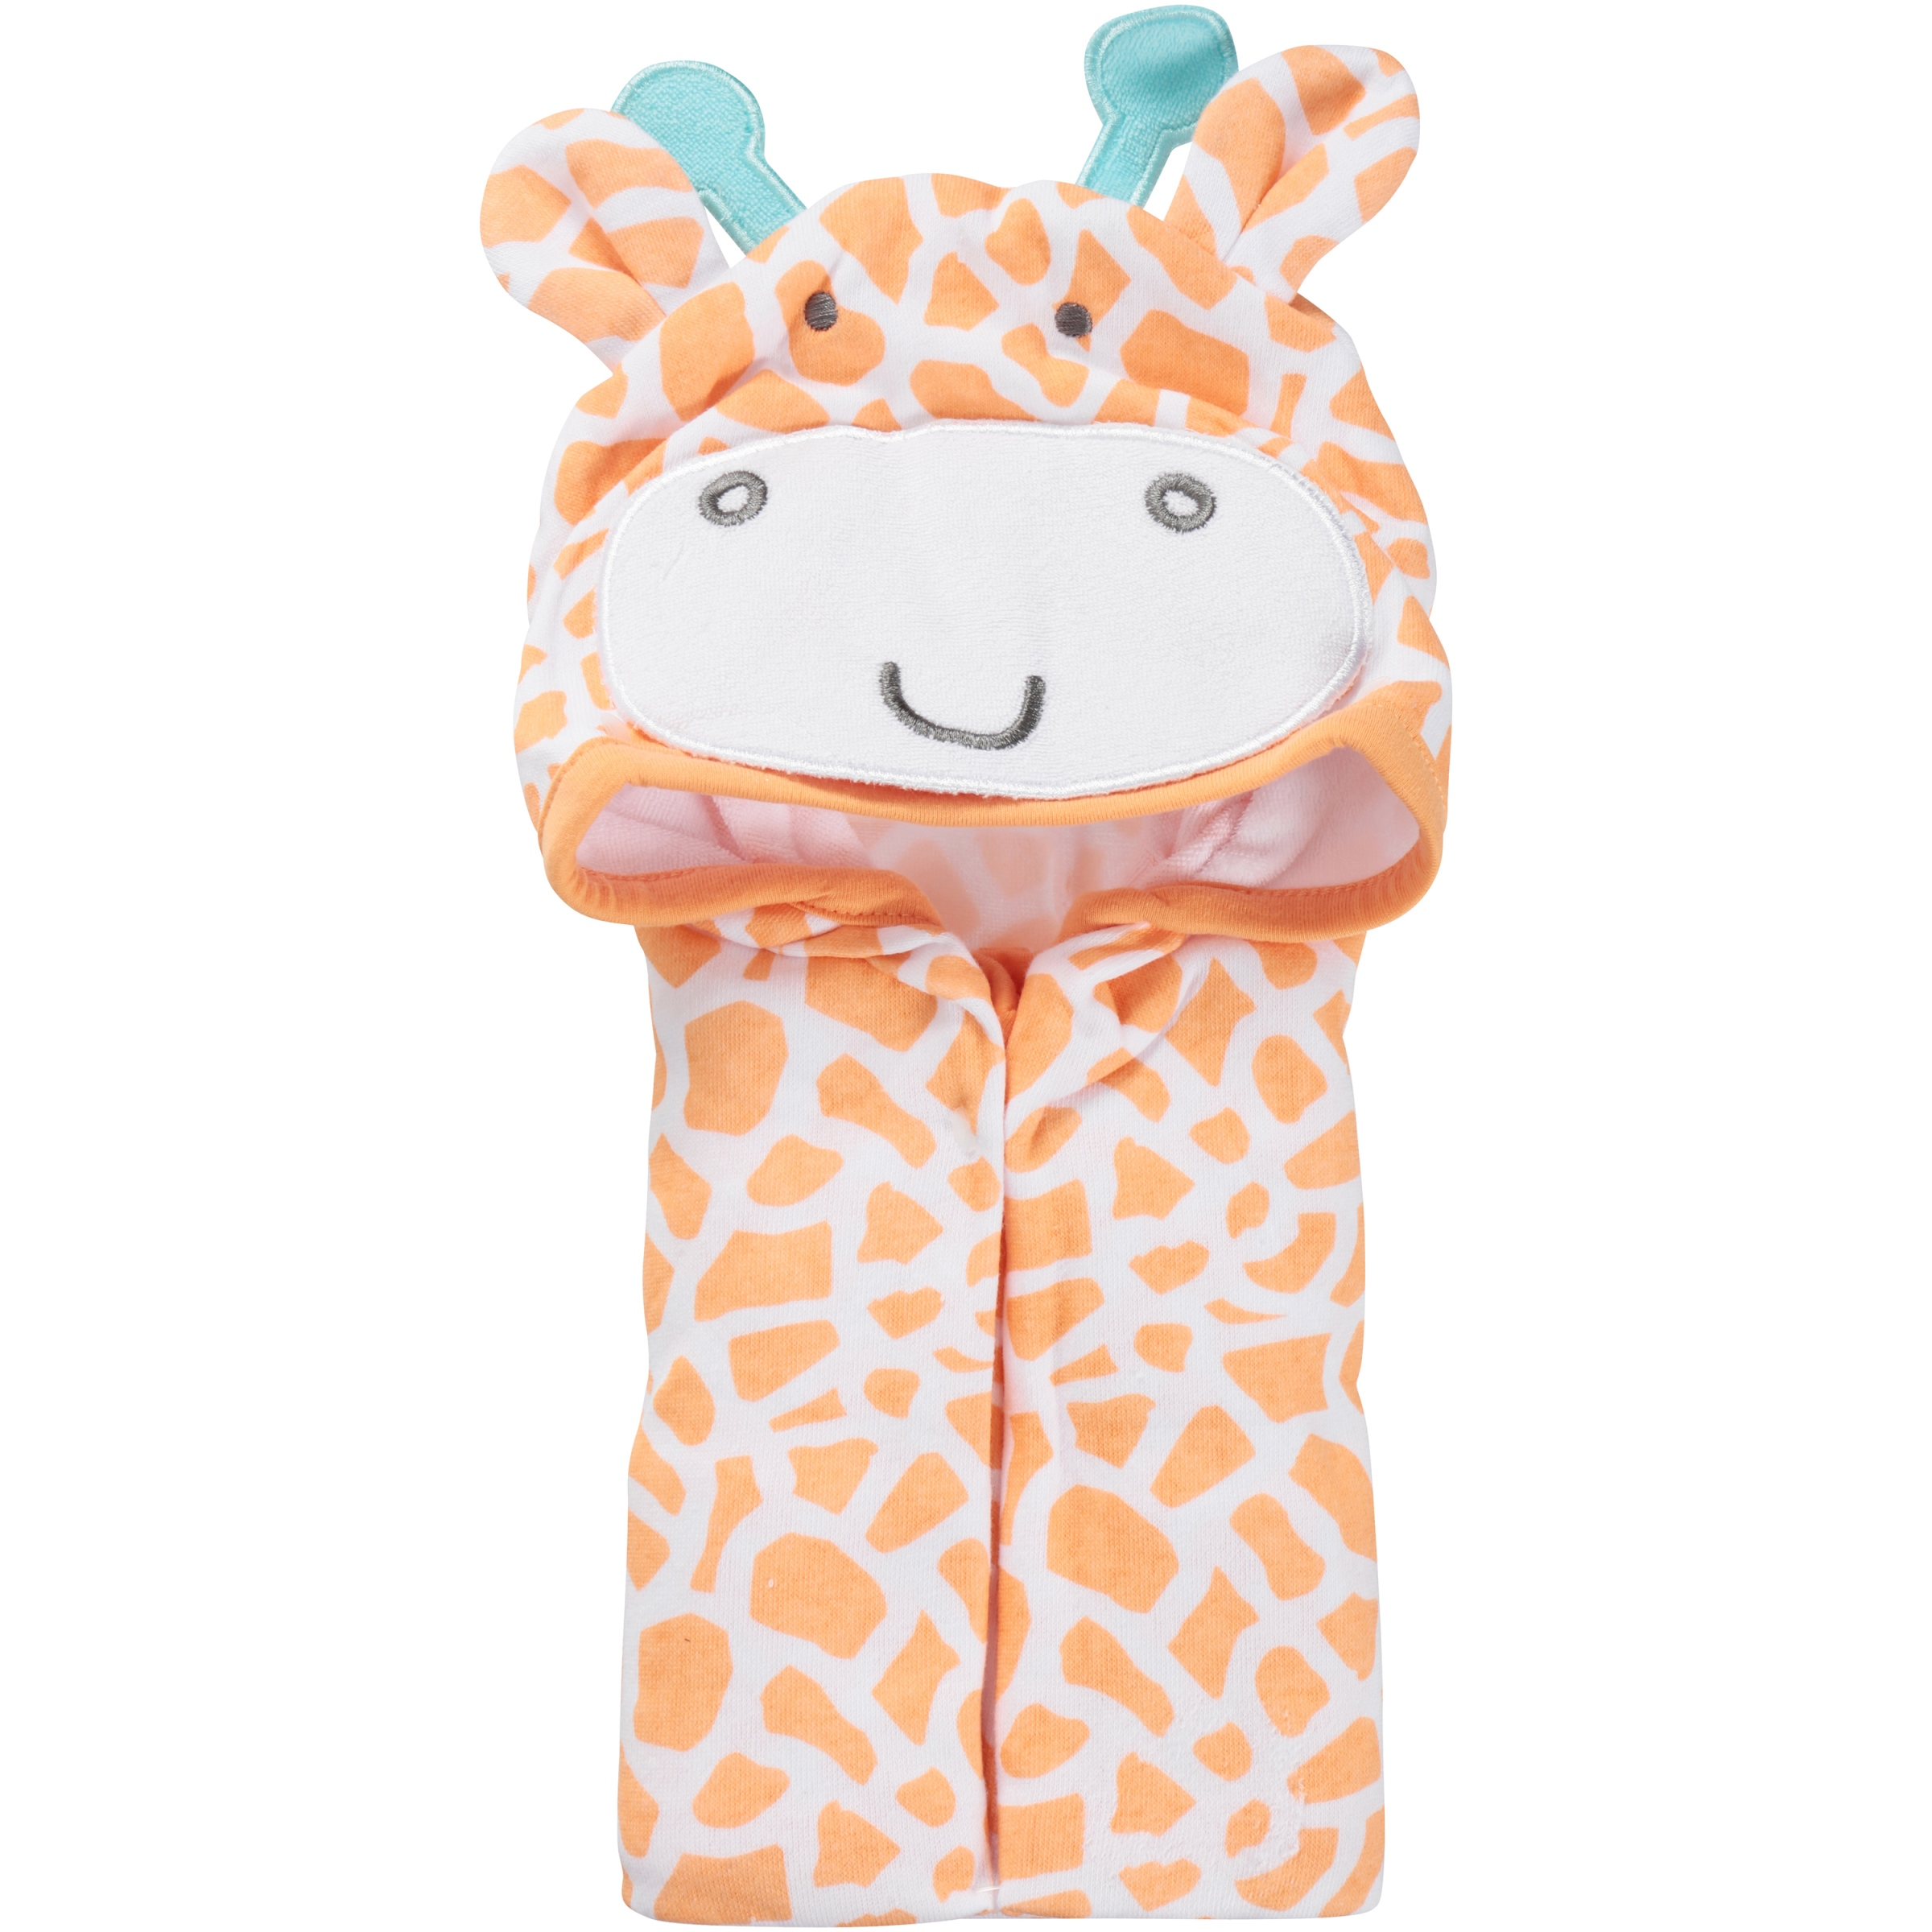 Newborn Baby Unisex Terry Hooded Bath Wrap with 3D Applique